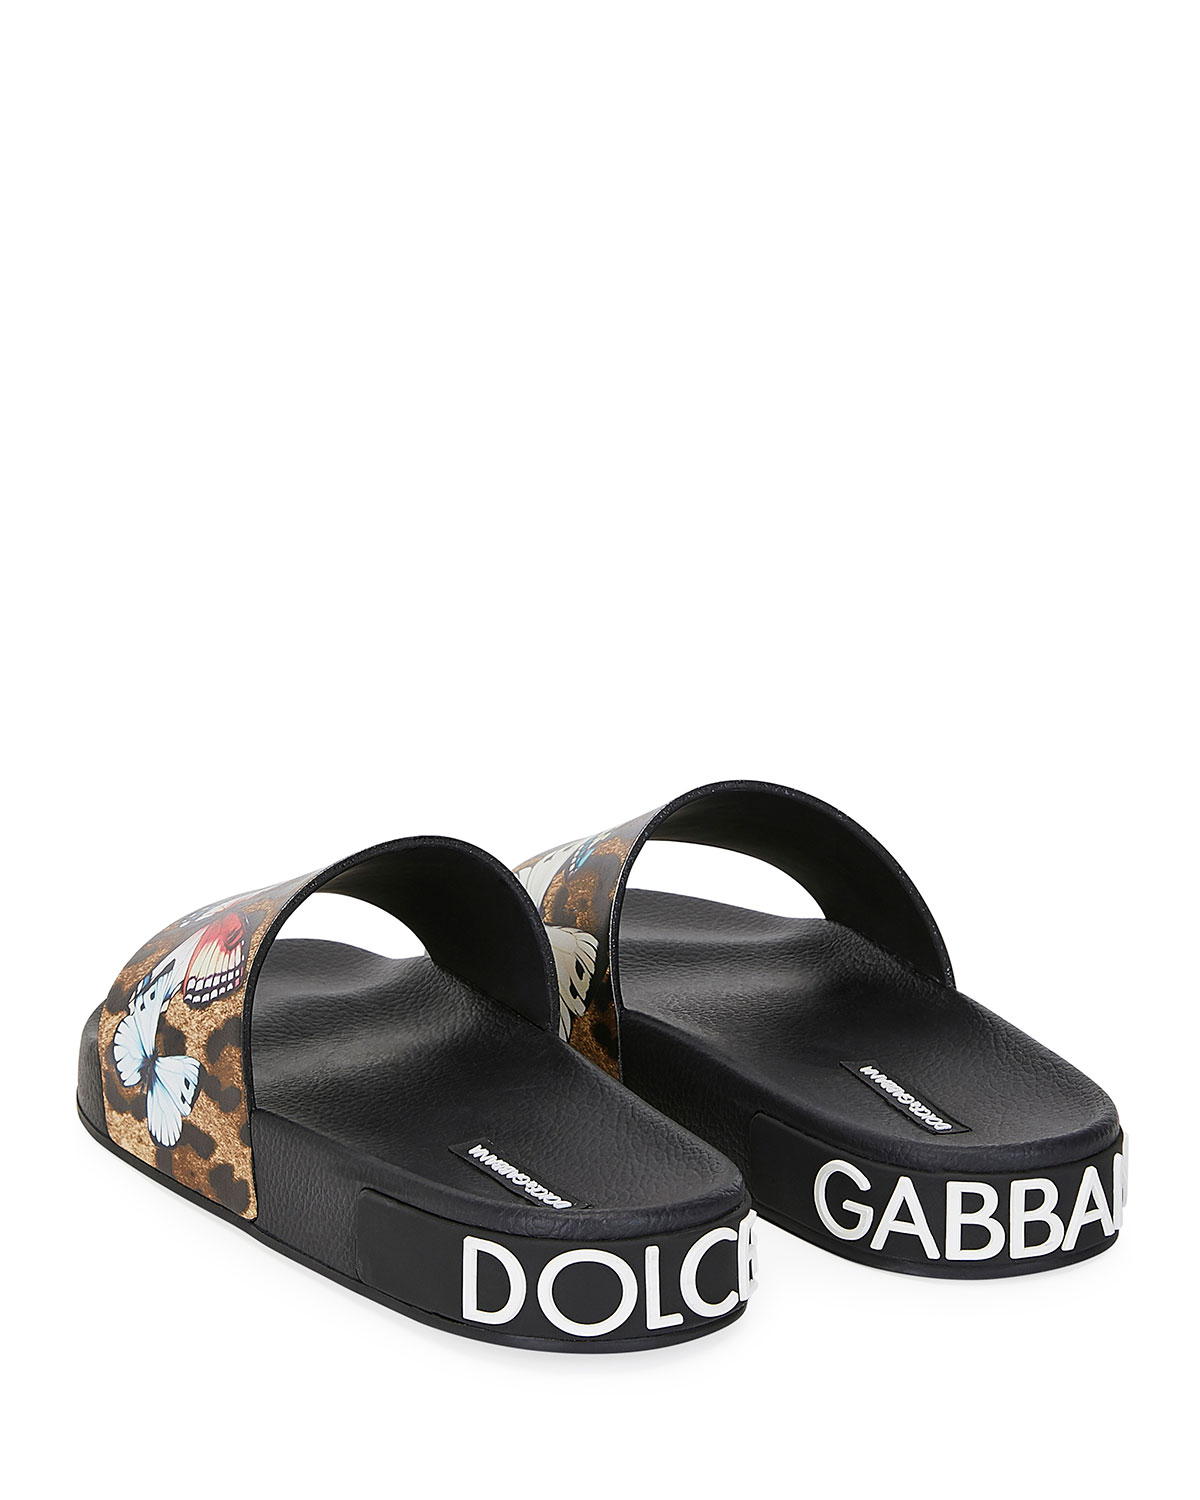 dolce and gabbana on my flip flops off